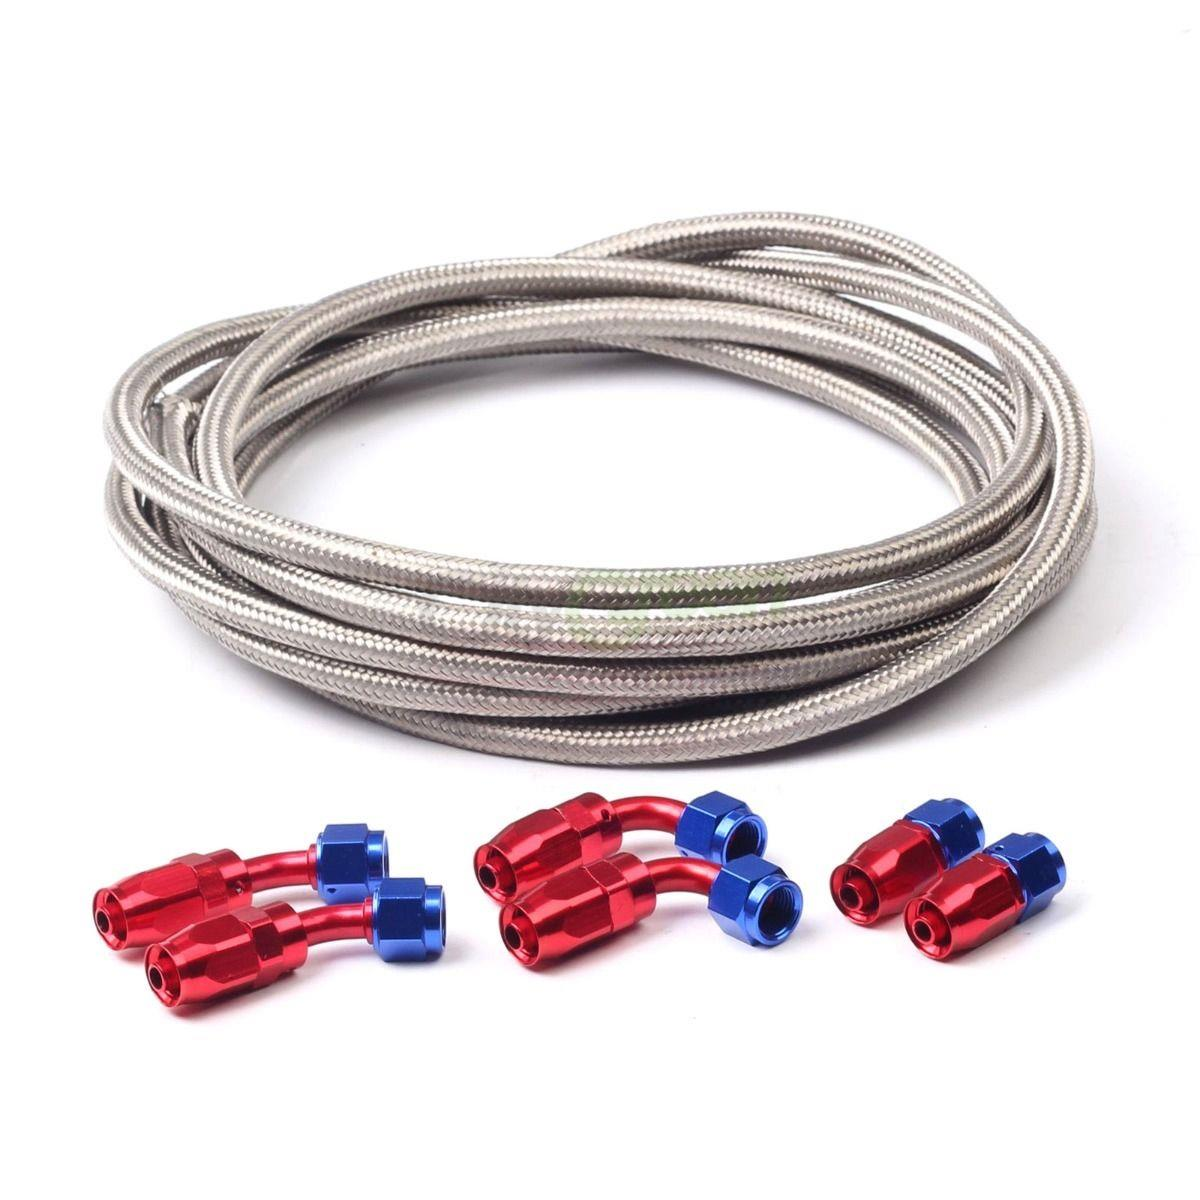 Ft nylon and stainless steel braided fuel oil line hose